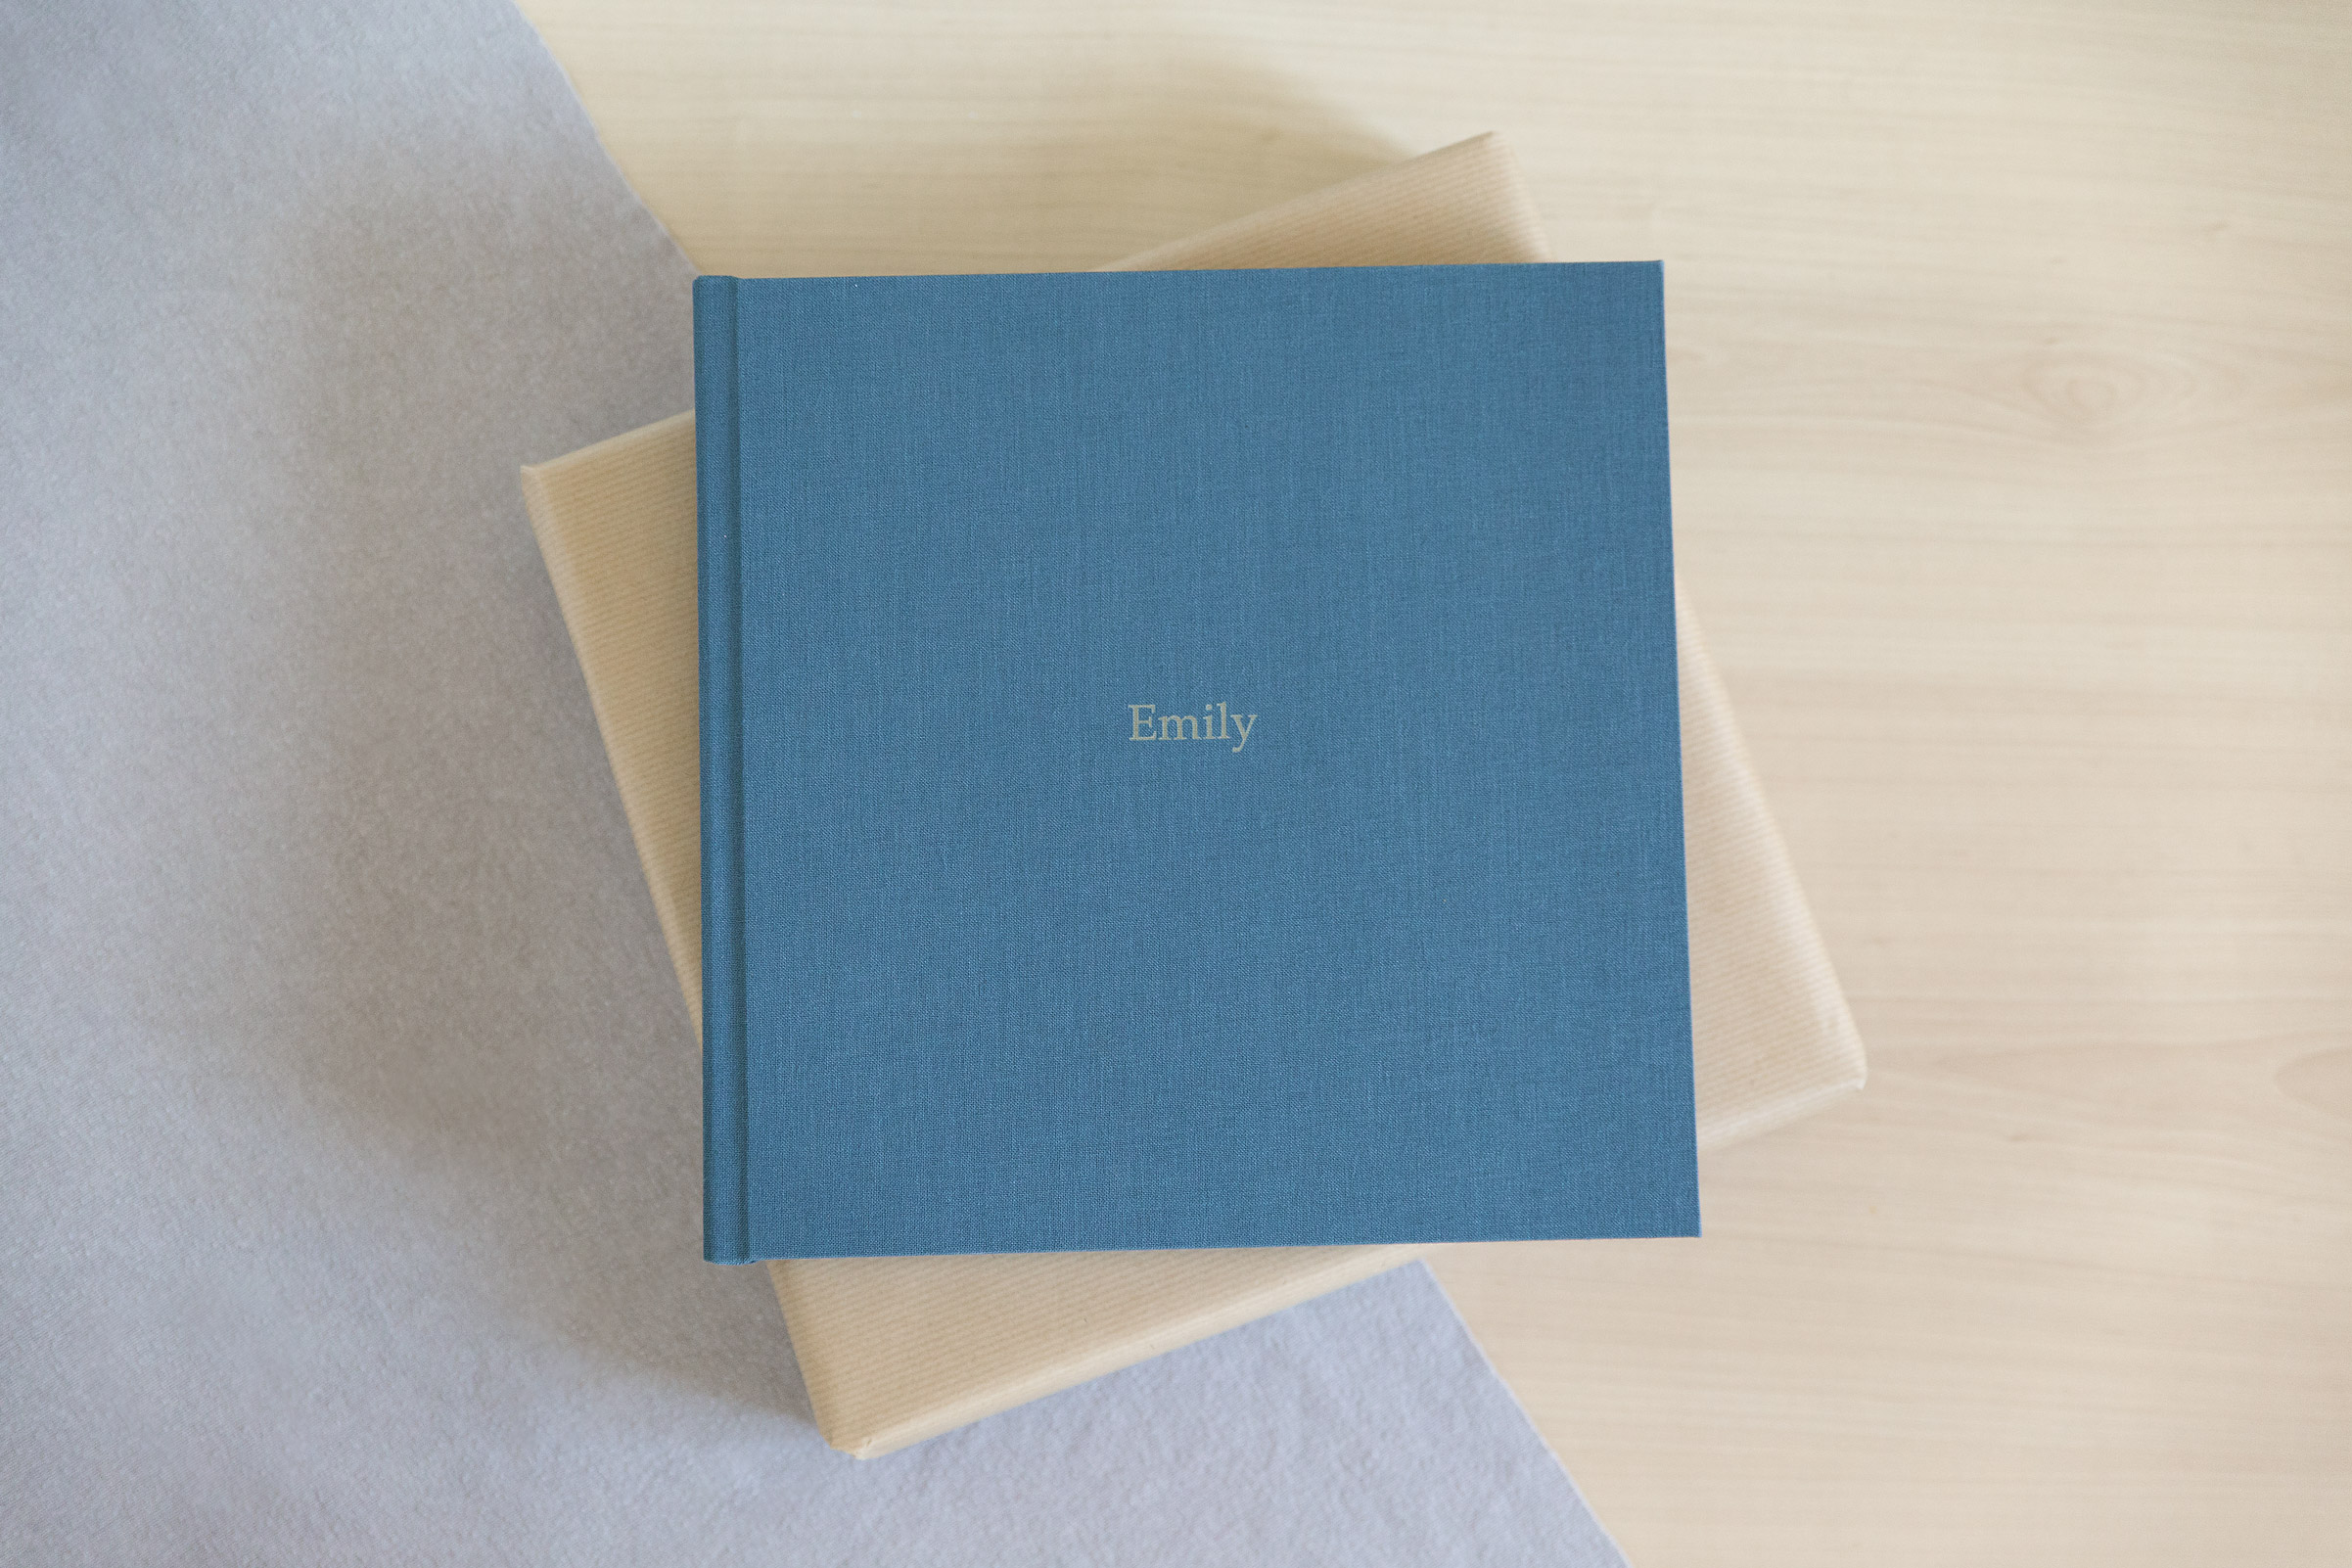 newborn baby photography professional album covered in blue linen